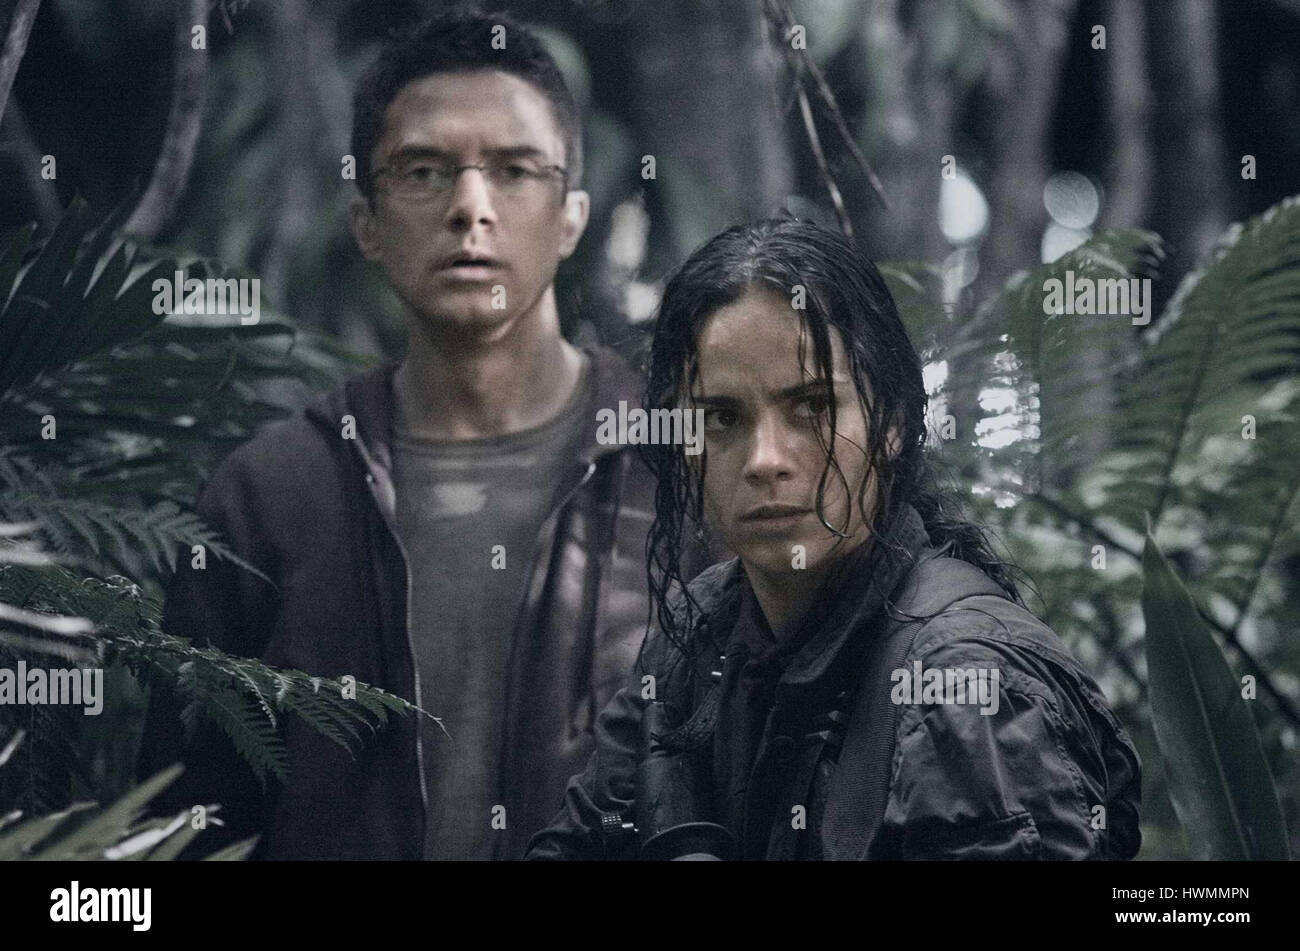 PREDATORS (2010) TOPHER GRACE ALICE BRAGA NIMROD ANTAL (DIR) 20TH CENTURY FOX/MOVIESTORE COLLECTION LTD - Stock Image